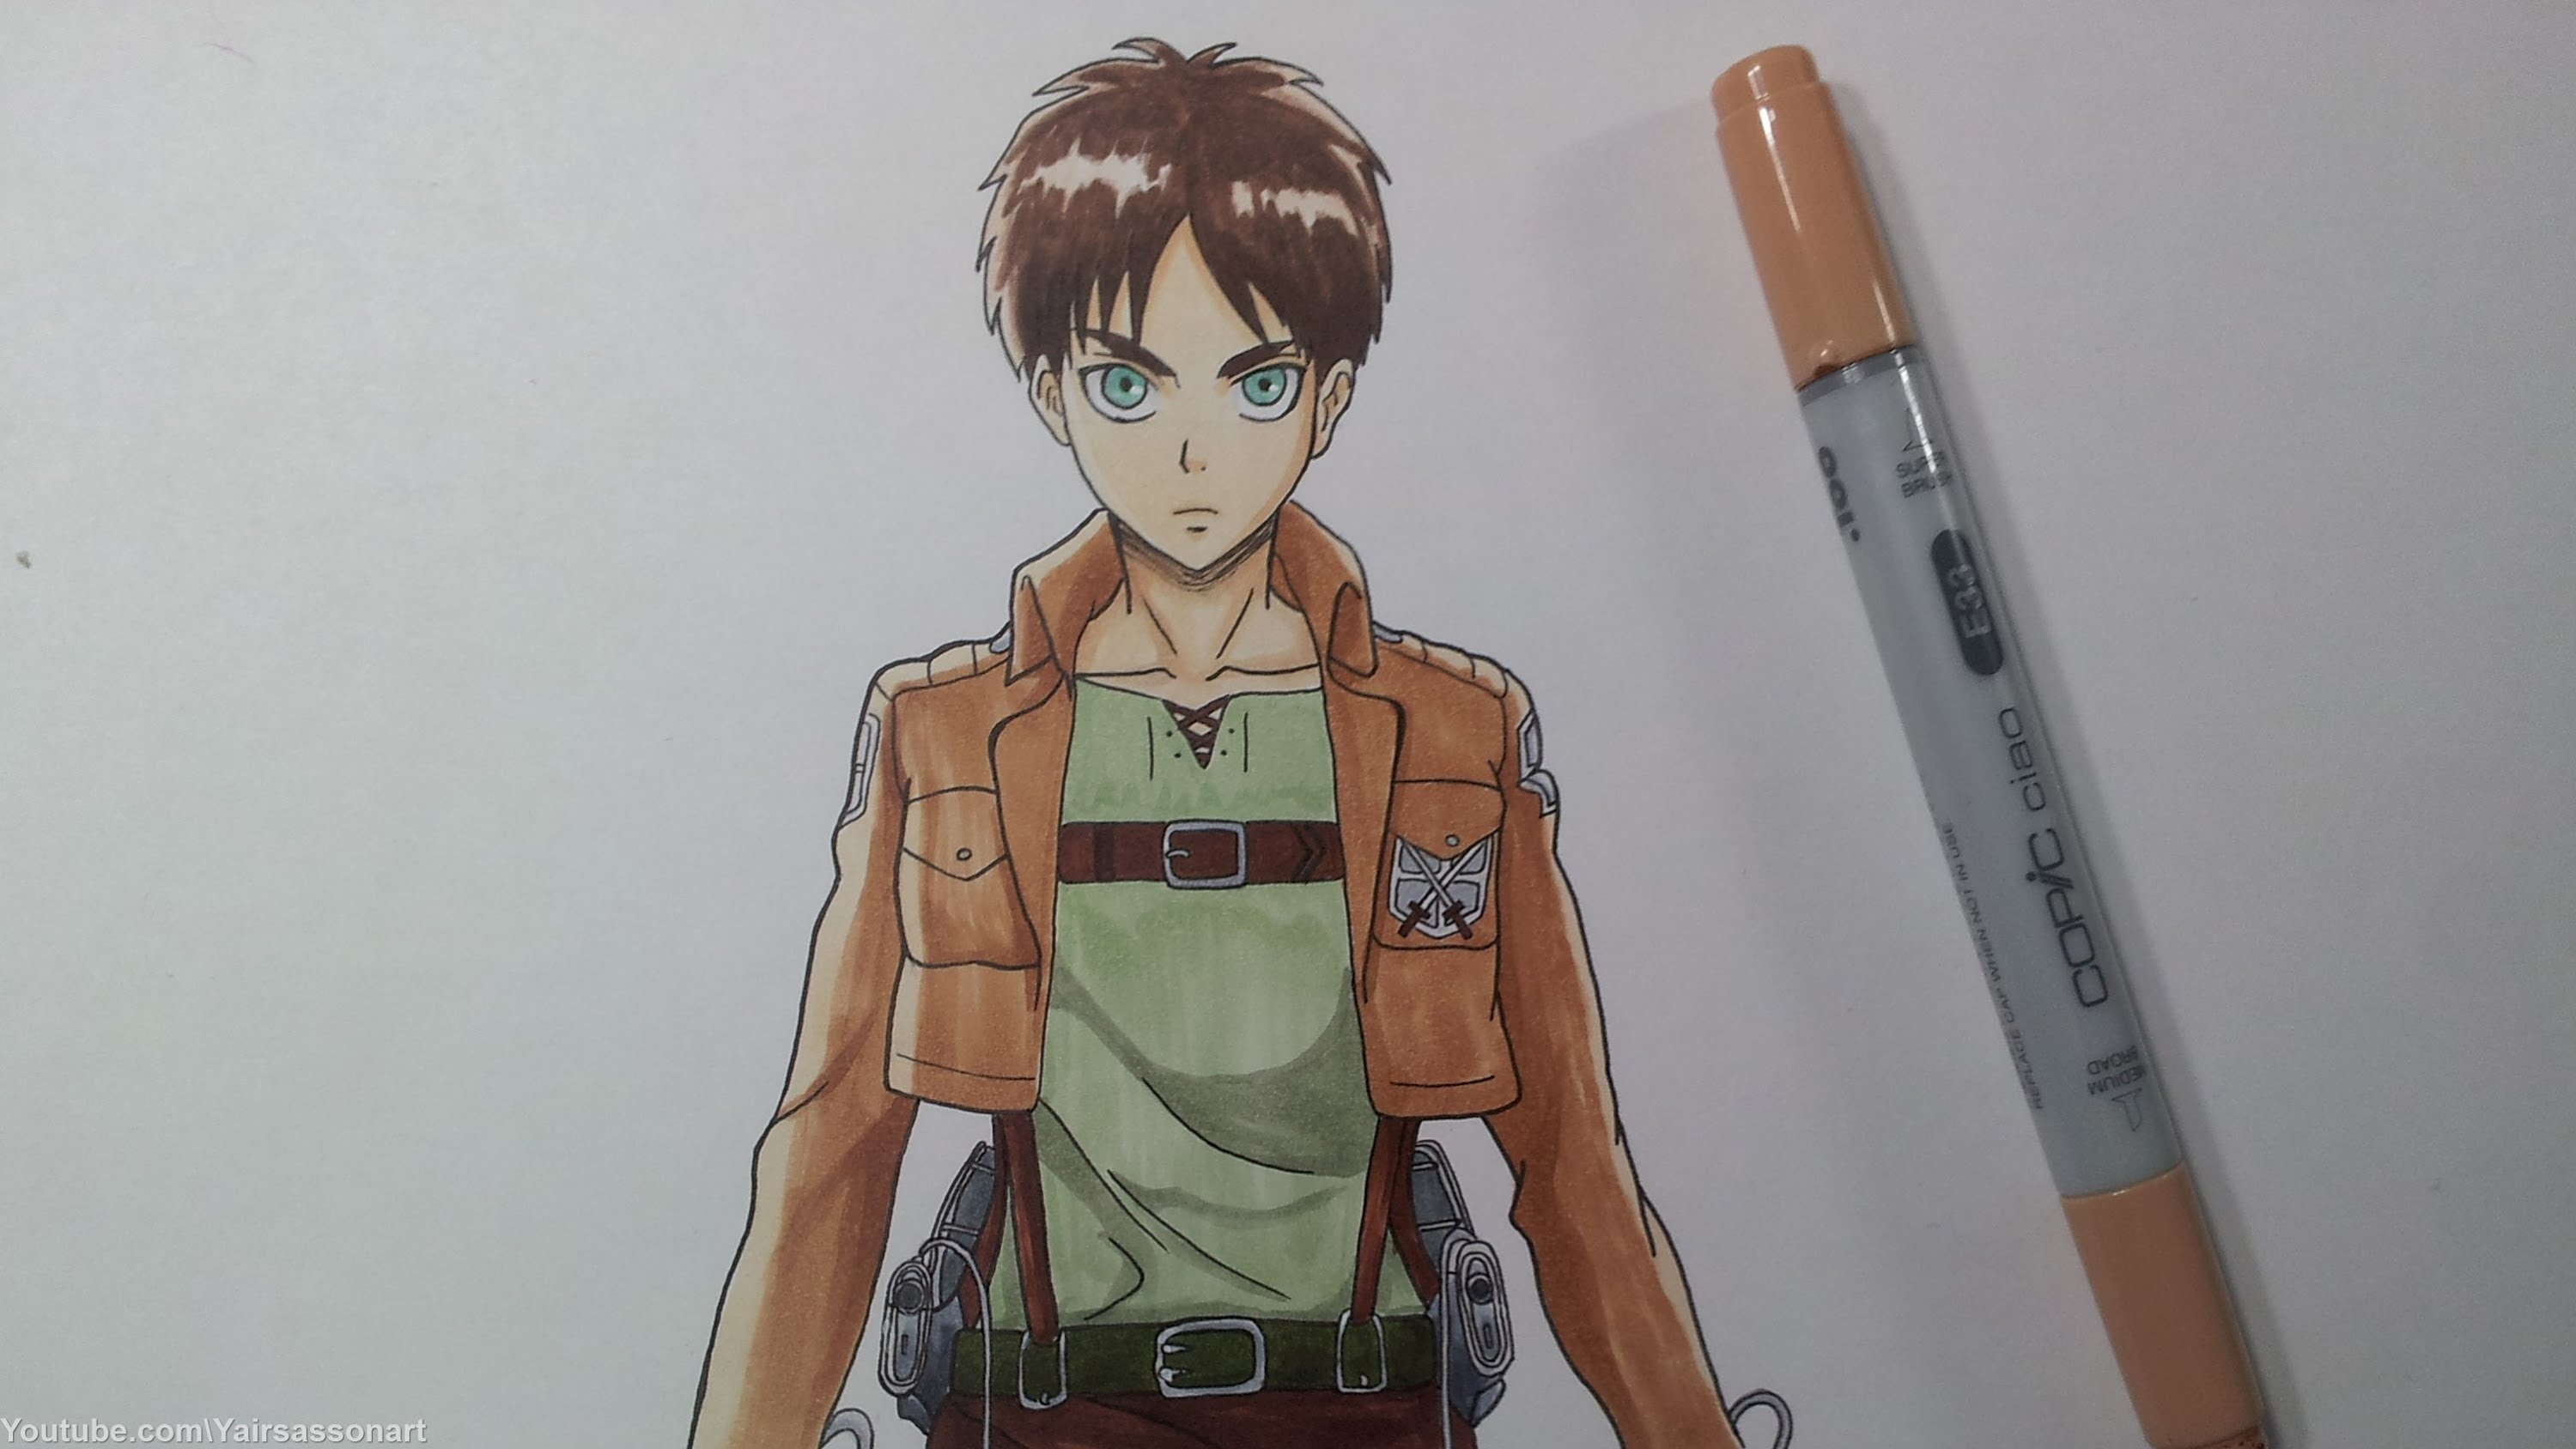 Drawn amd attack on titan YouTube Eren on Jeager Drawing